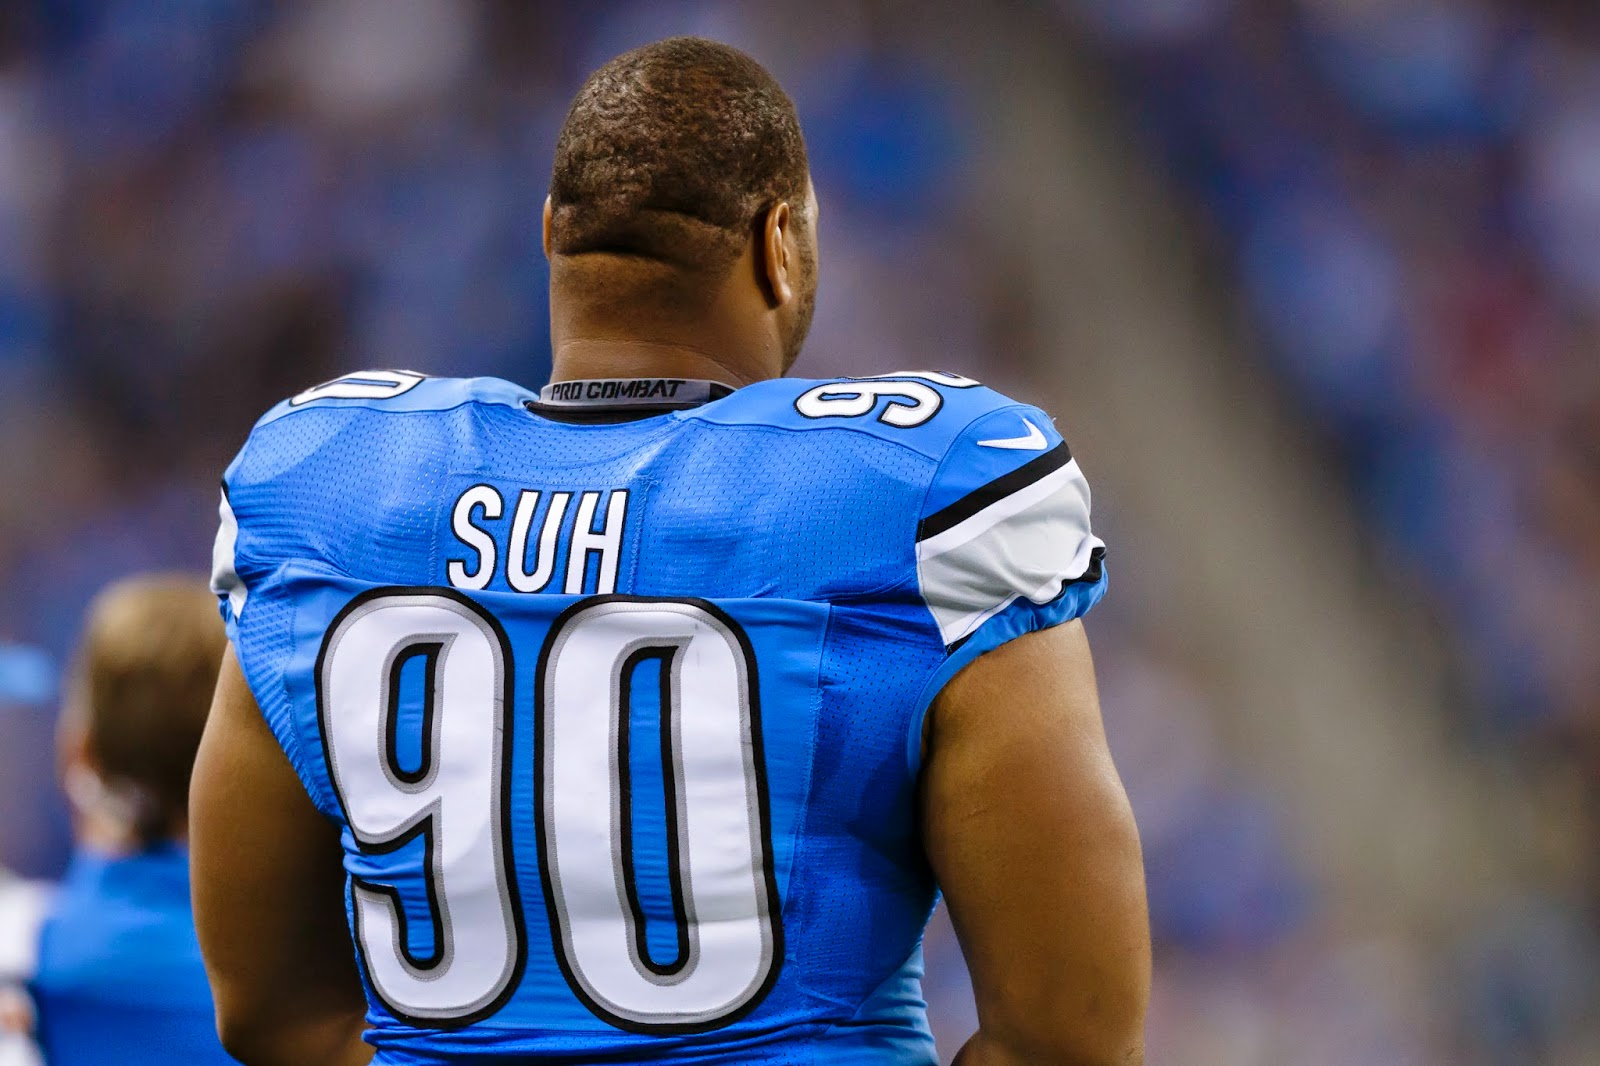 Detroit Lions — Keep an eye on Ndamukong Suh, Cam Newton starting with coin toss